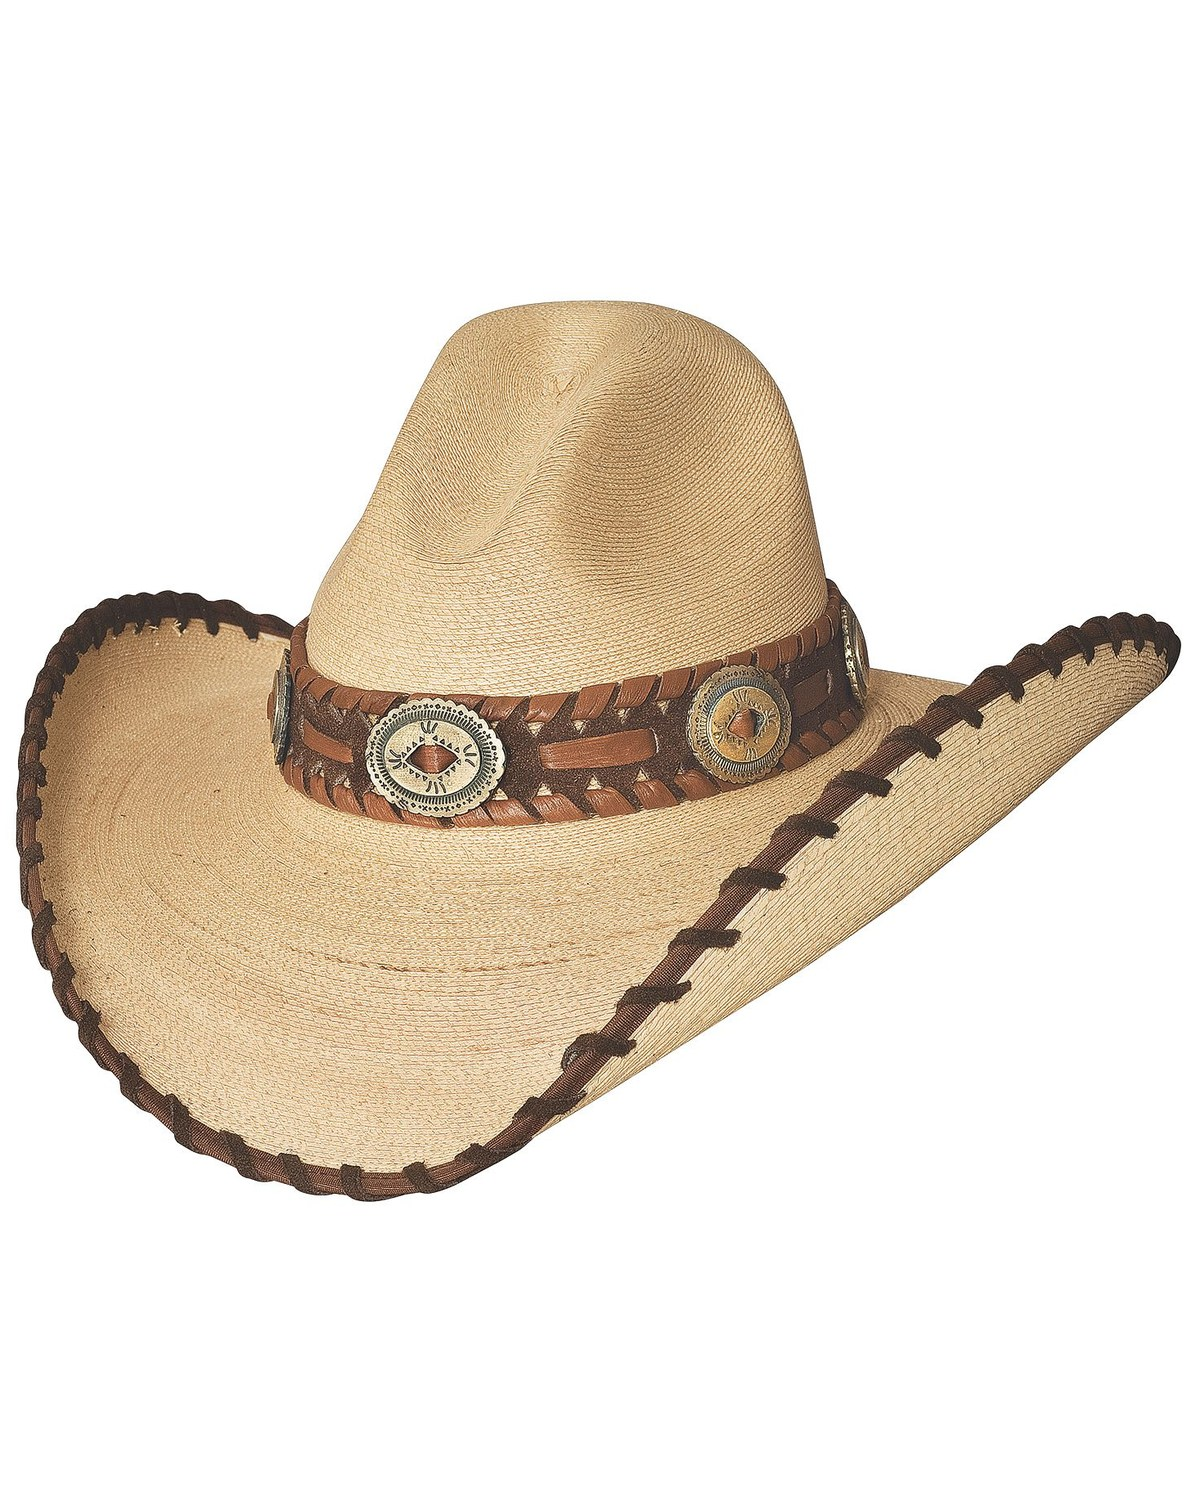 2204927da9941 Bullhide Women s Golden Dawn Straw Hat